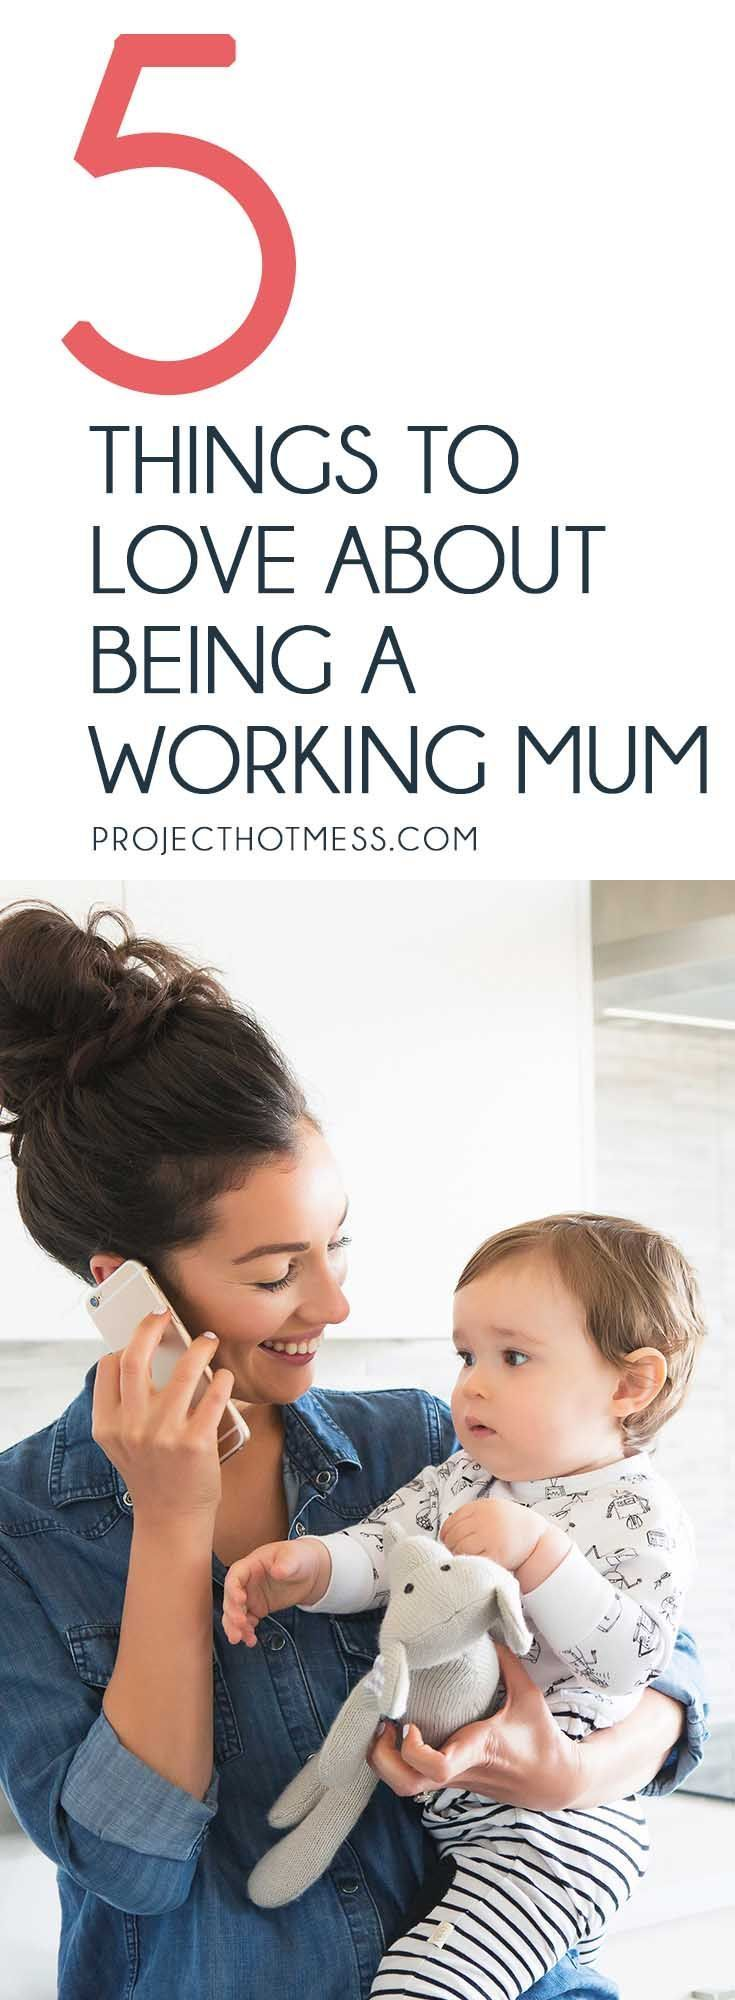 5 Issues To Love About Being a Working Mum